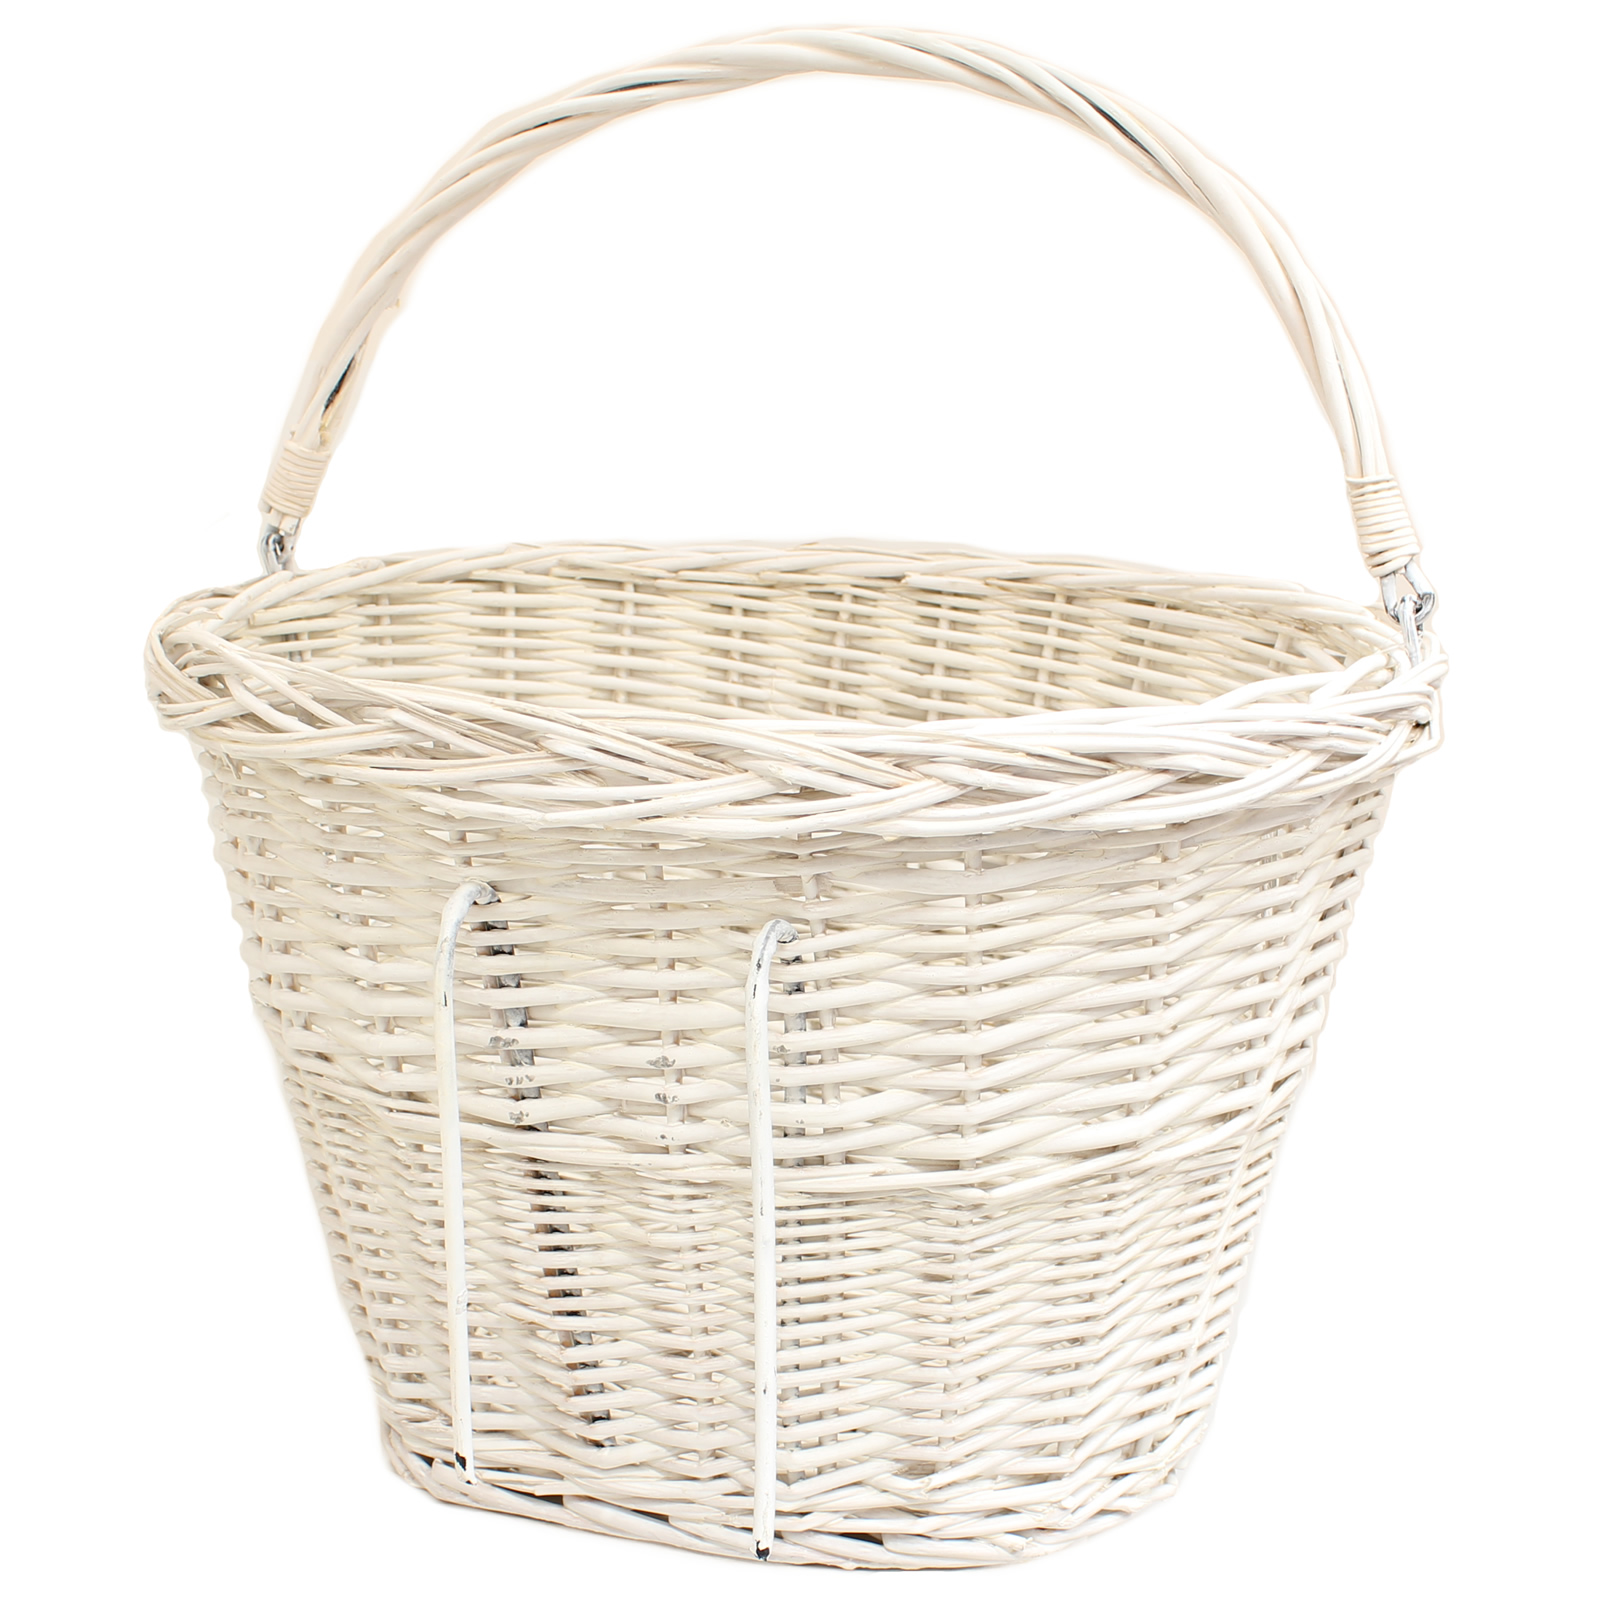 Wicker Bike Basket With Handle : Pedalpro white wicker bicycle ping basket carry handle